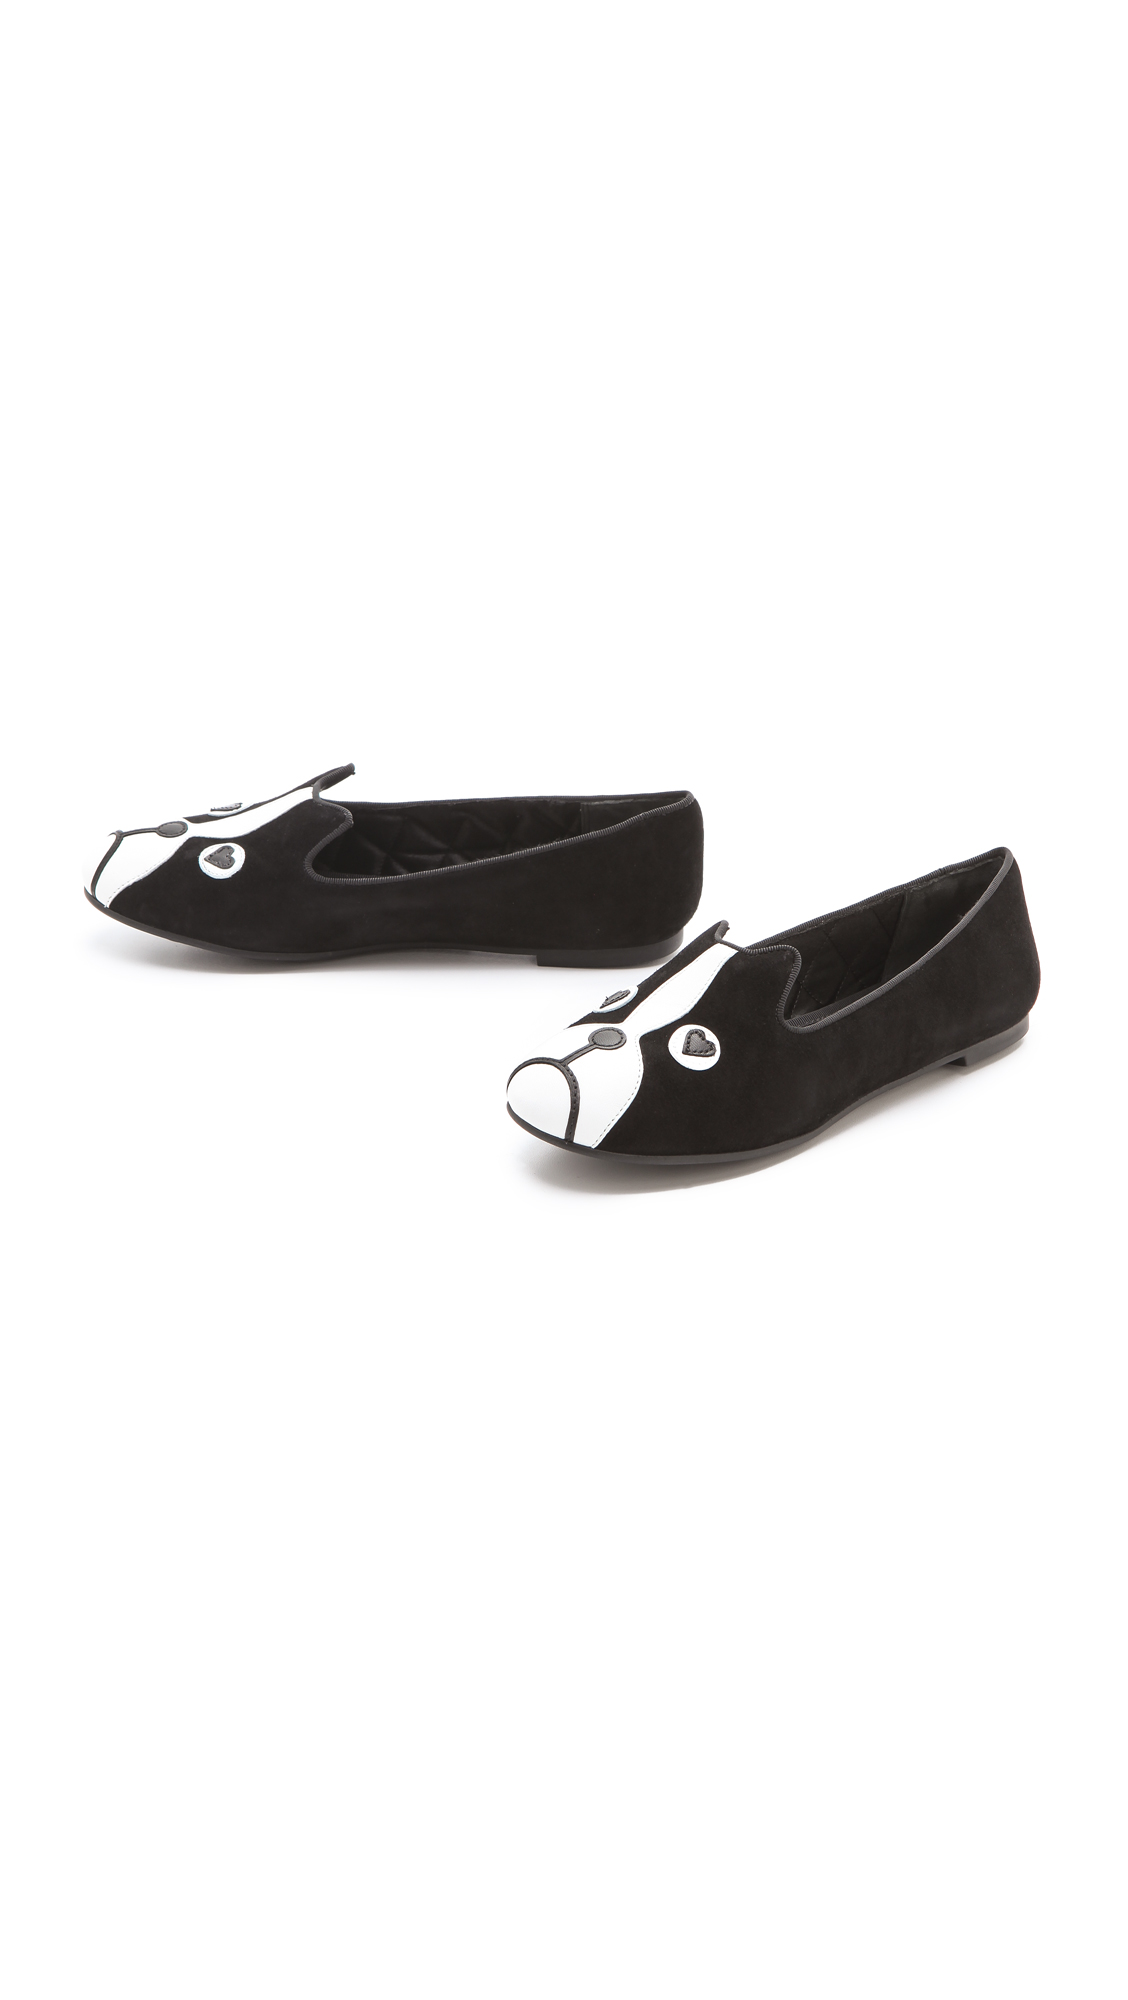 b0c40ca9d7 Marc by Marc Jacobs Dog Loafers   SHOPBOP